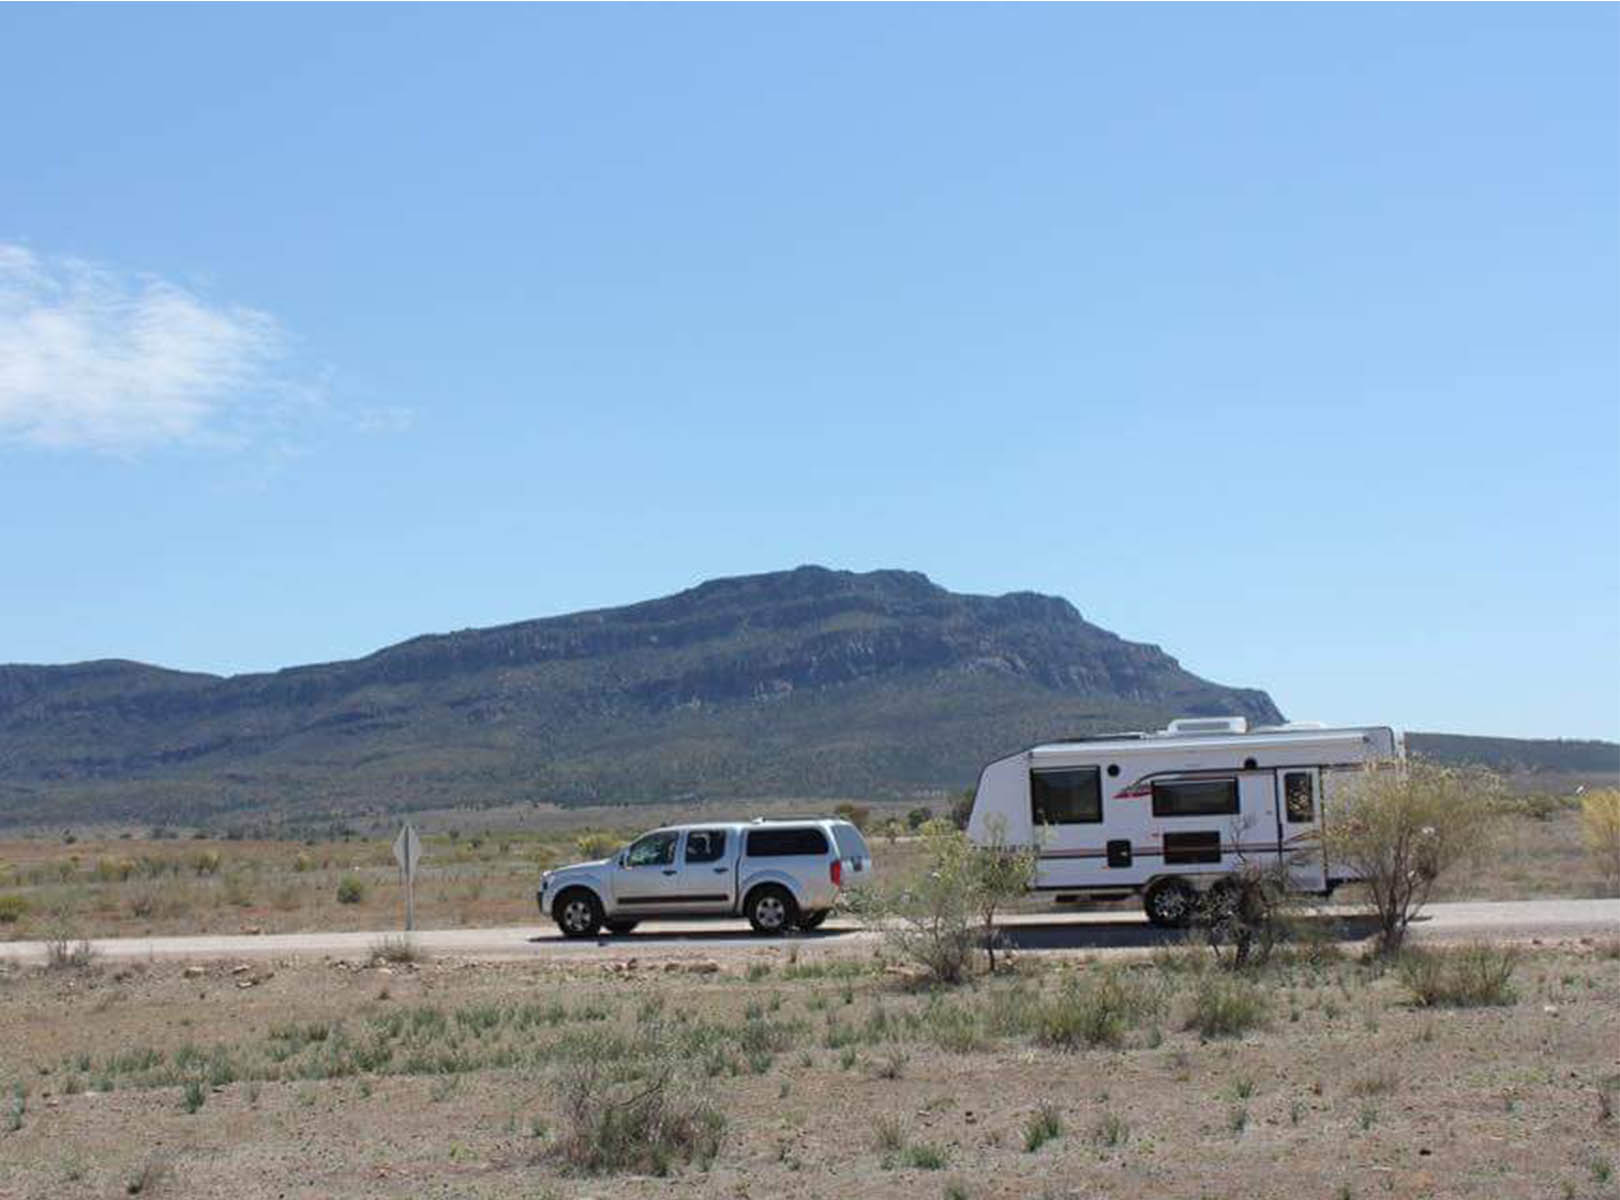 A 4x4 is towing a Newlands caravan